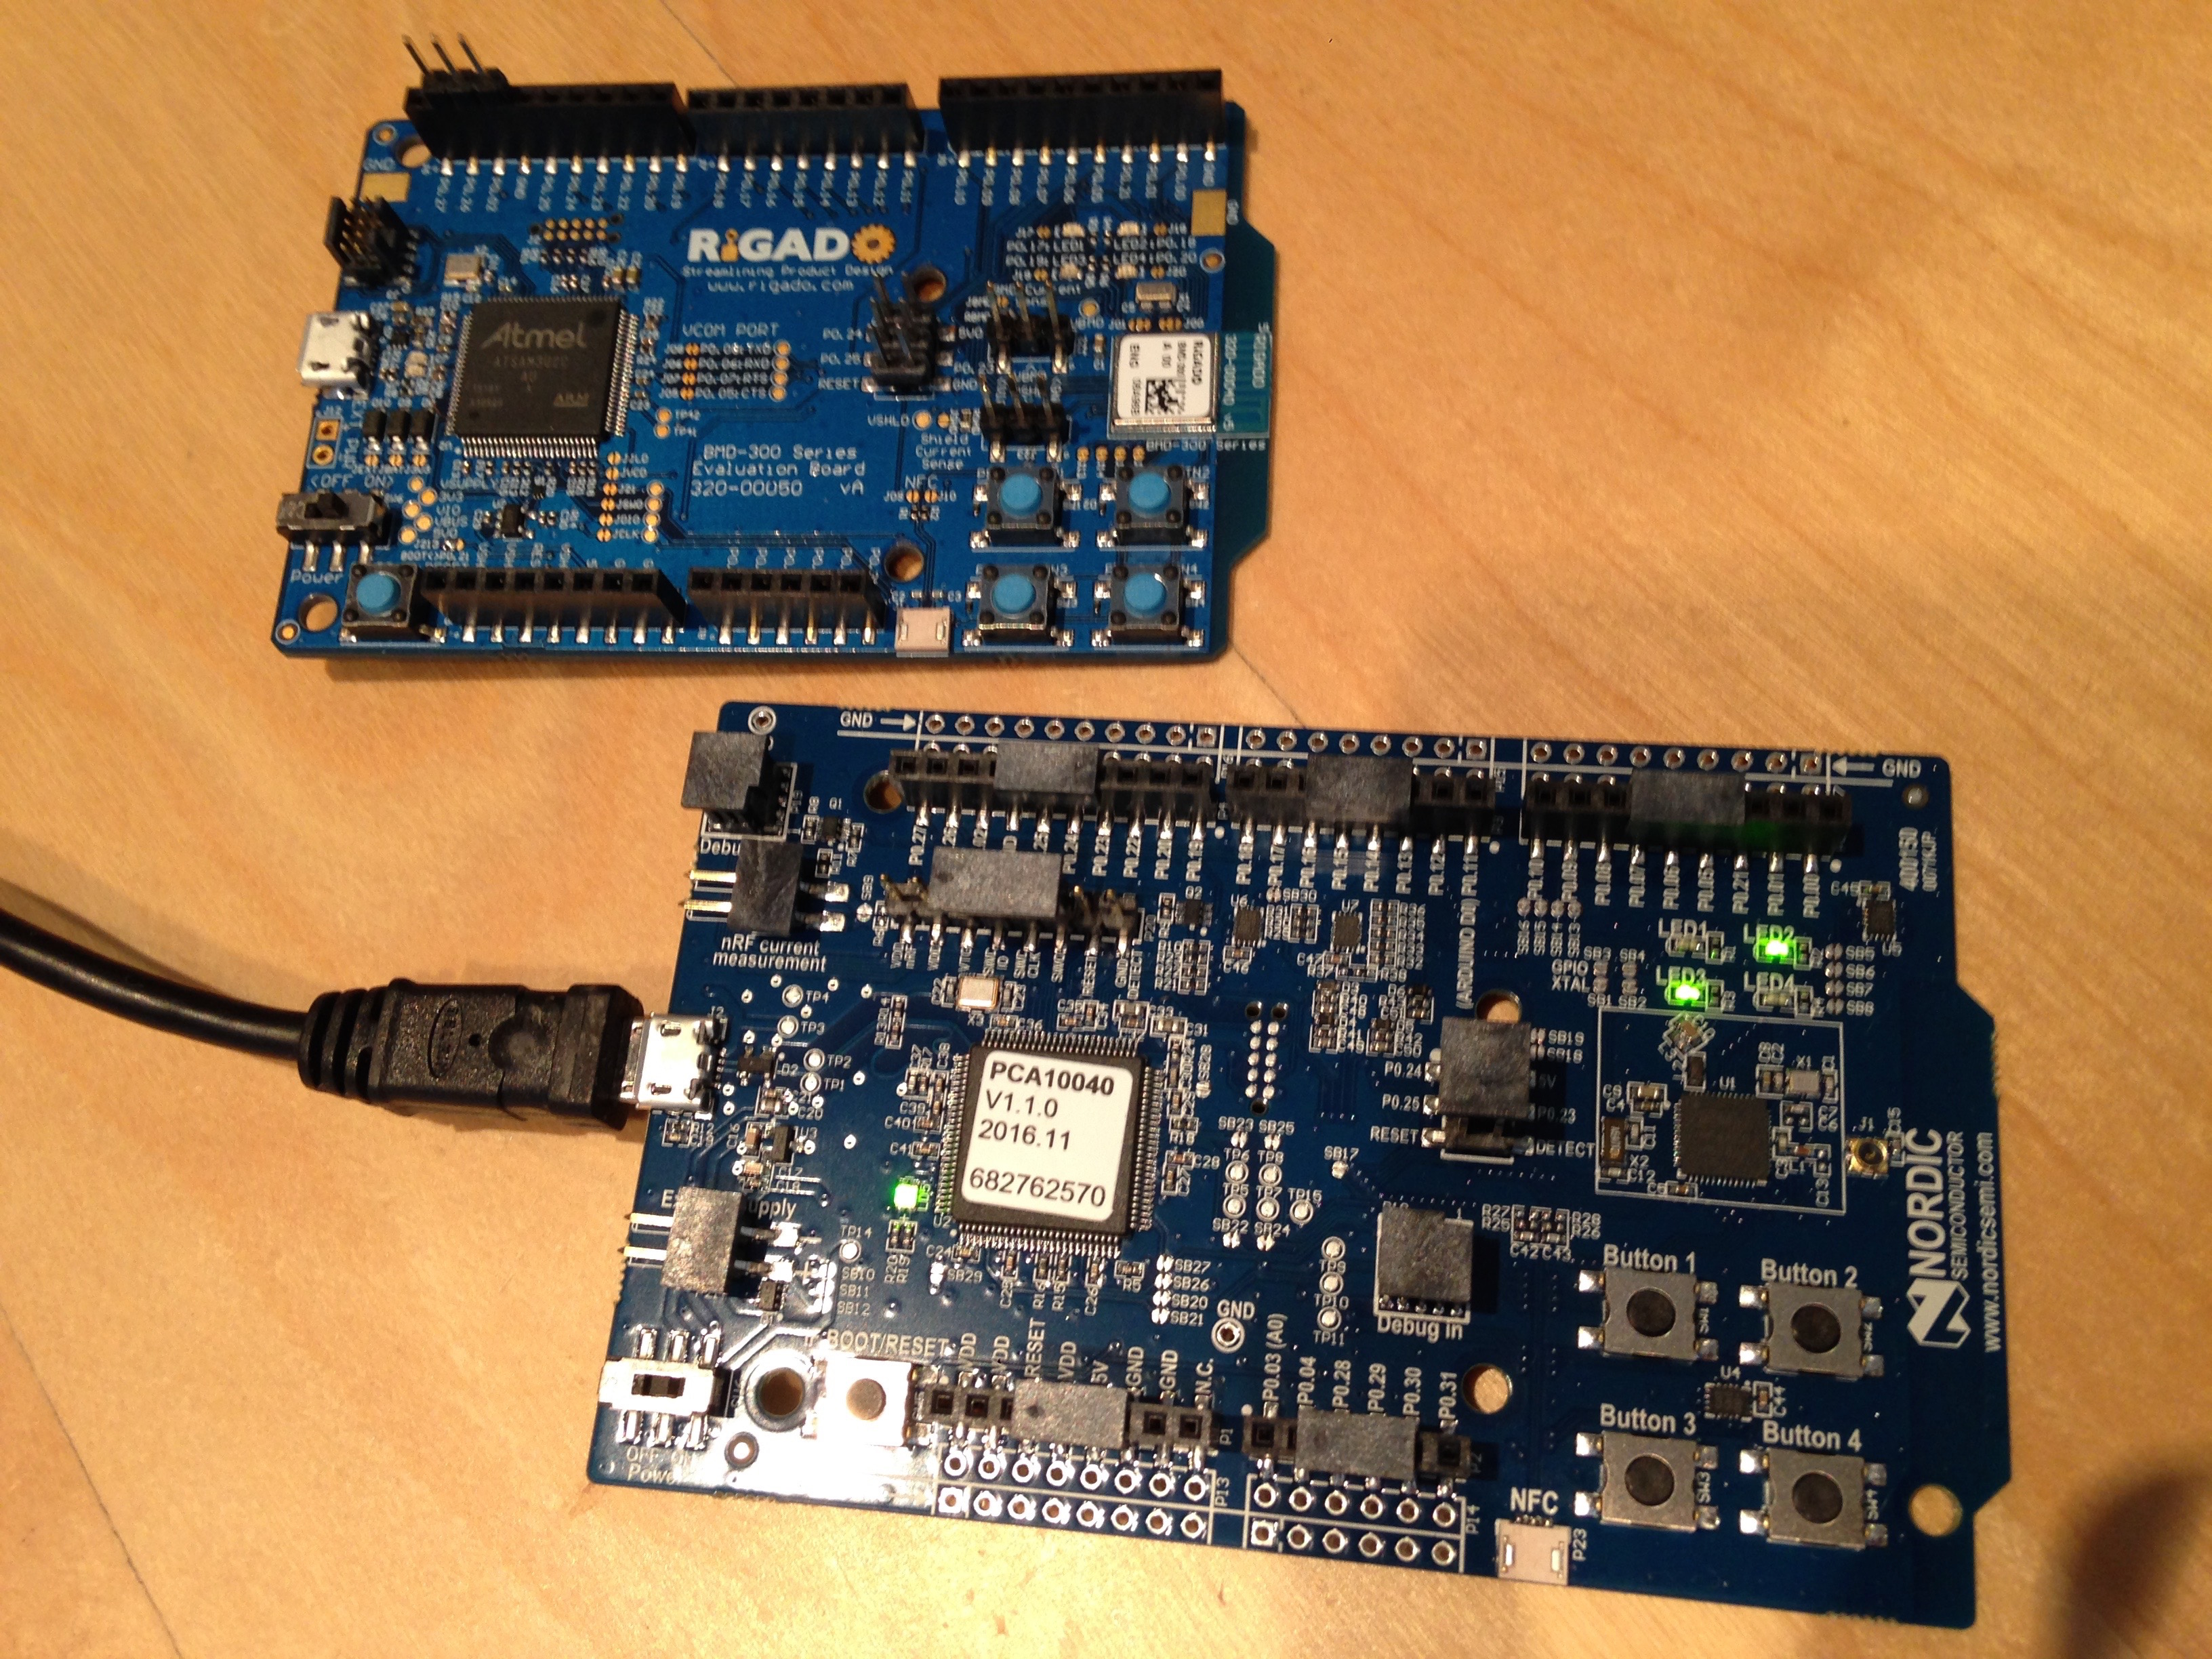 Nordic and Rigado dev boards